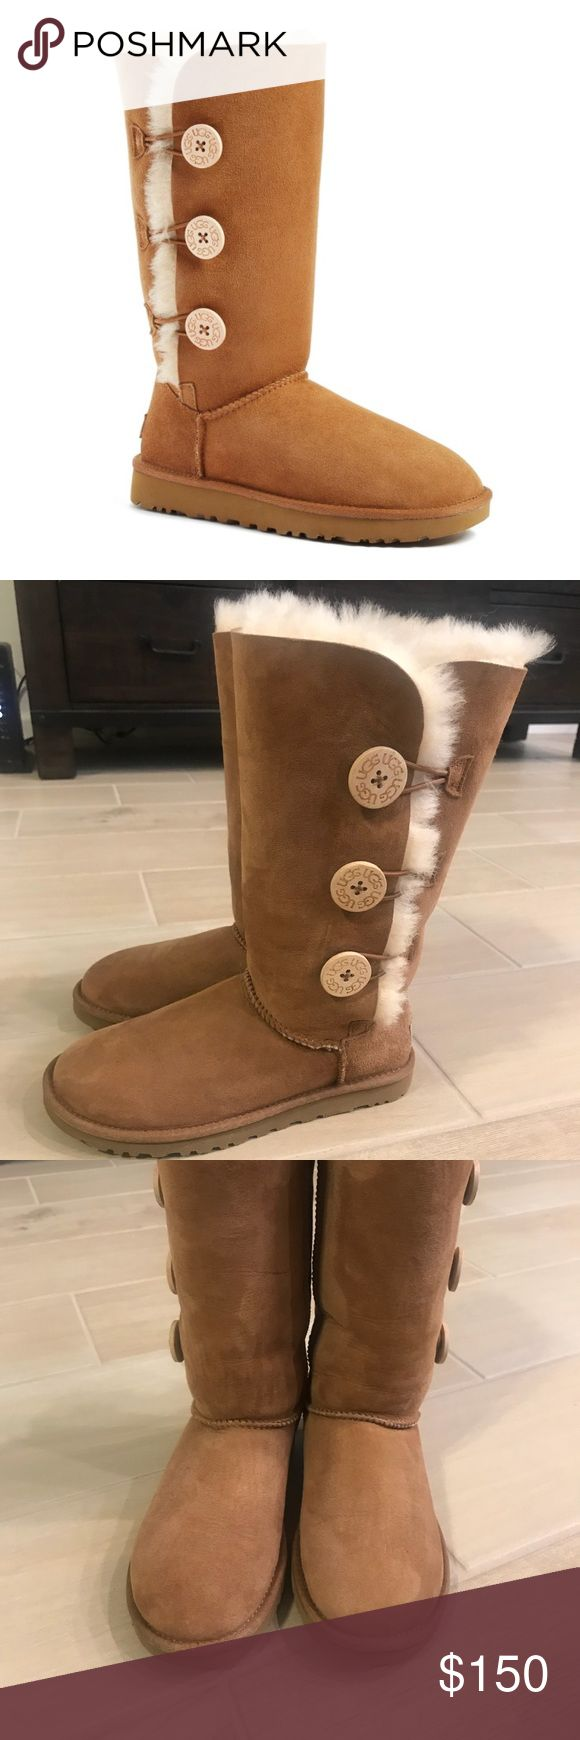 BRAND NEW UGG Bailey Button Tall Boots BRAND NEW UGG Bailey Button Tall Boots. Women's Size 5/Euro 36 UGG Shoes Winter & Rain Boots